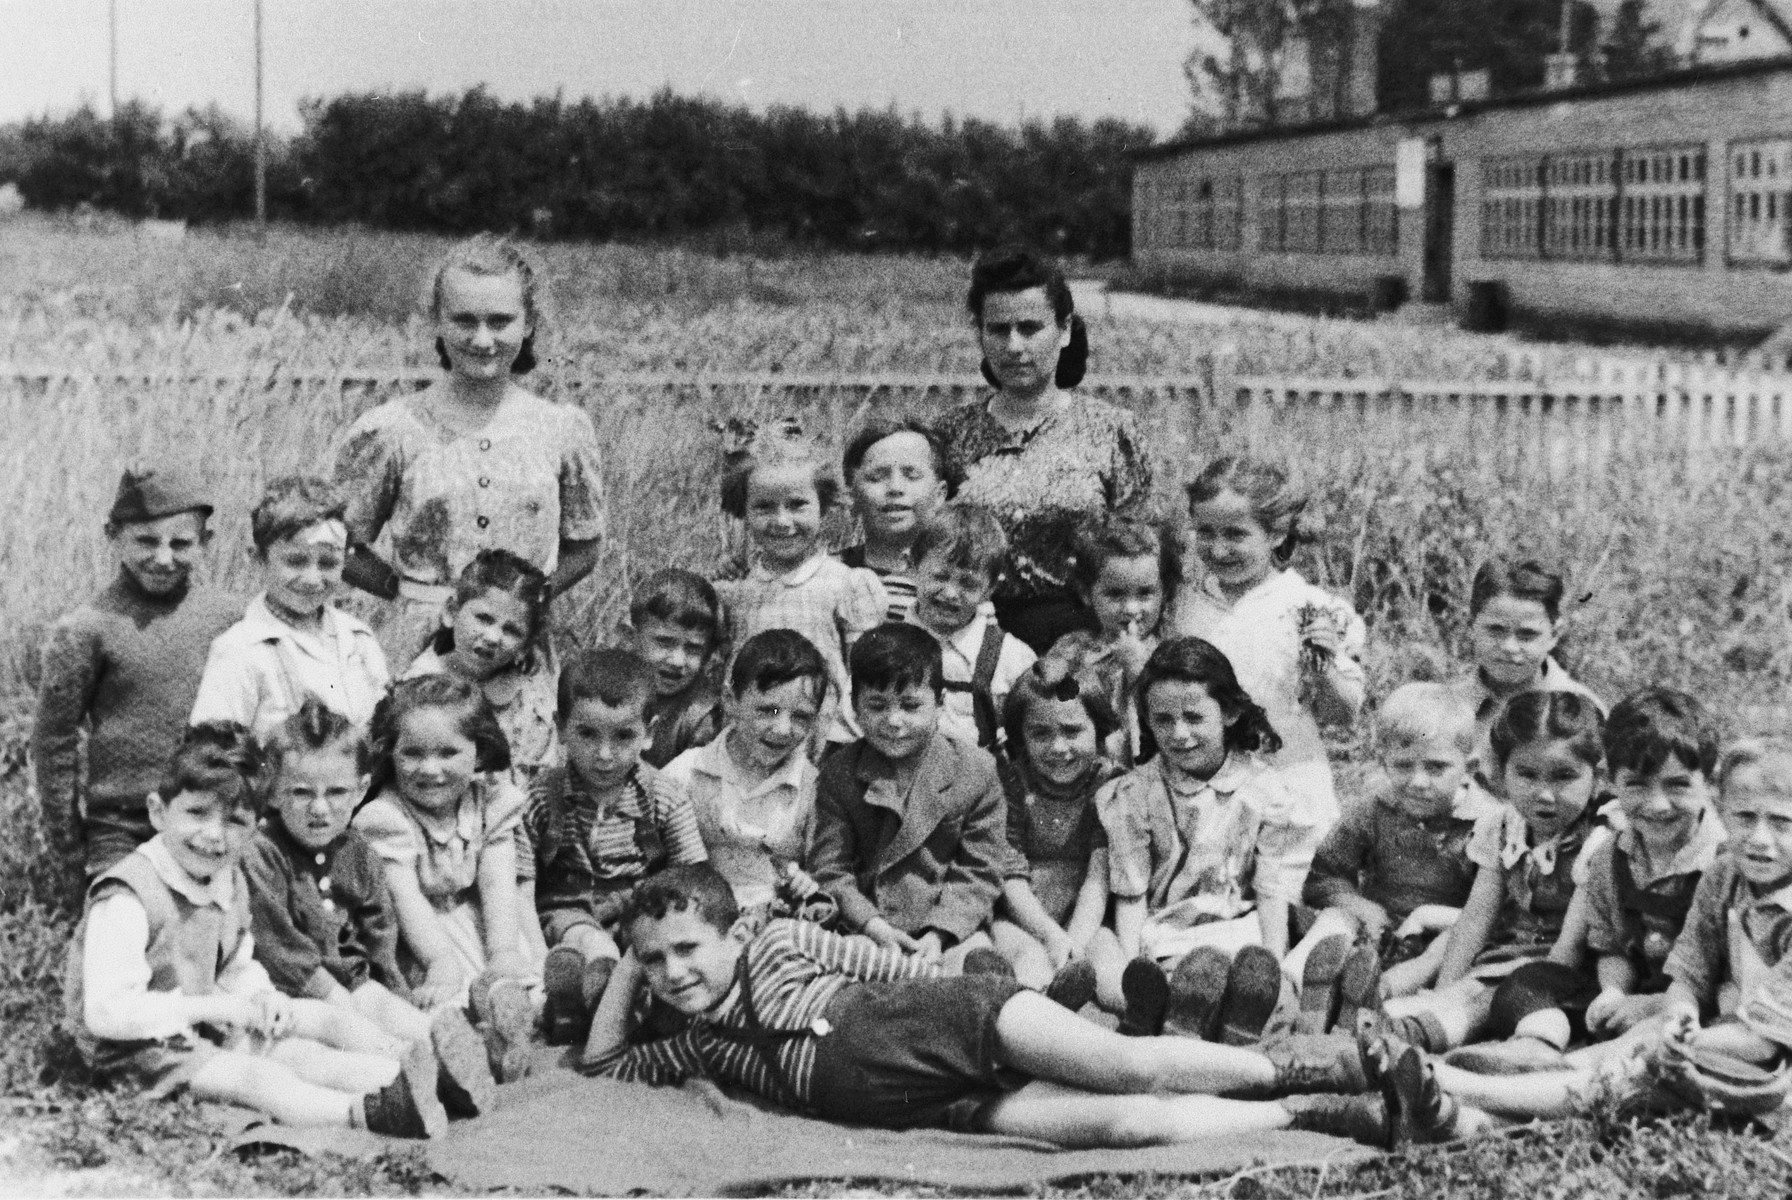 Kindergarteners in the Wels DP camp pose in an open field.  Yehudit Wagner who was working as a teacher's aide is in the back, left.